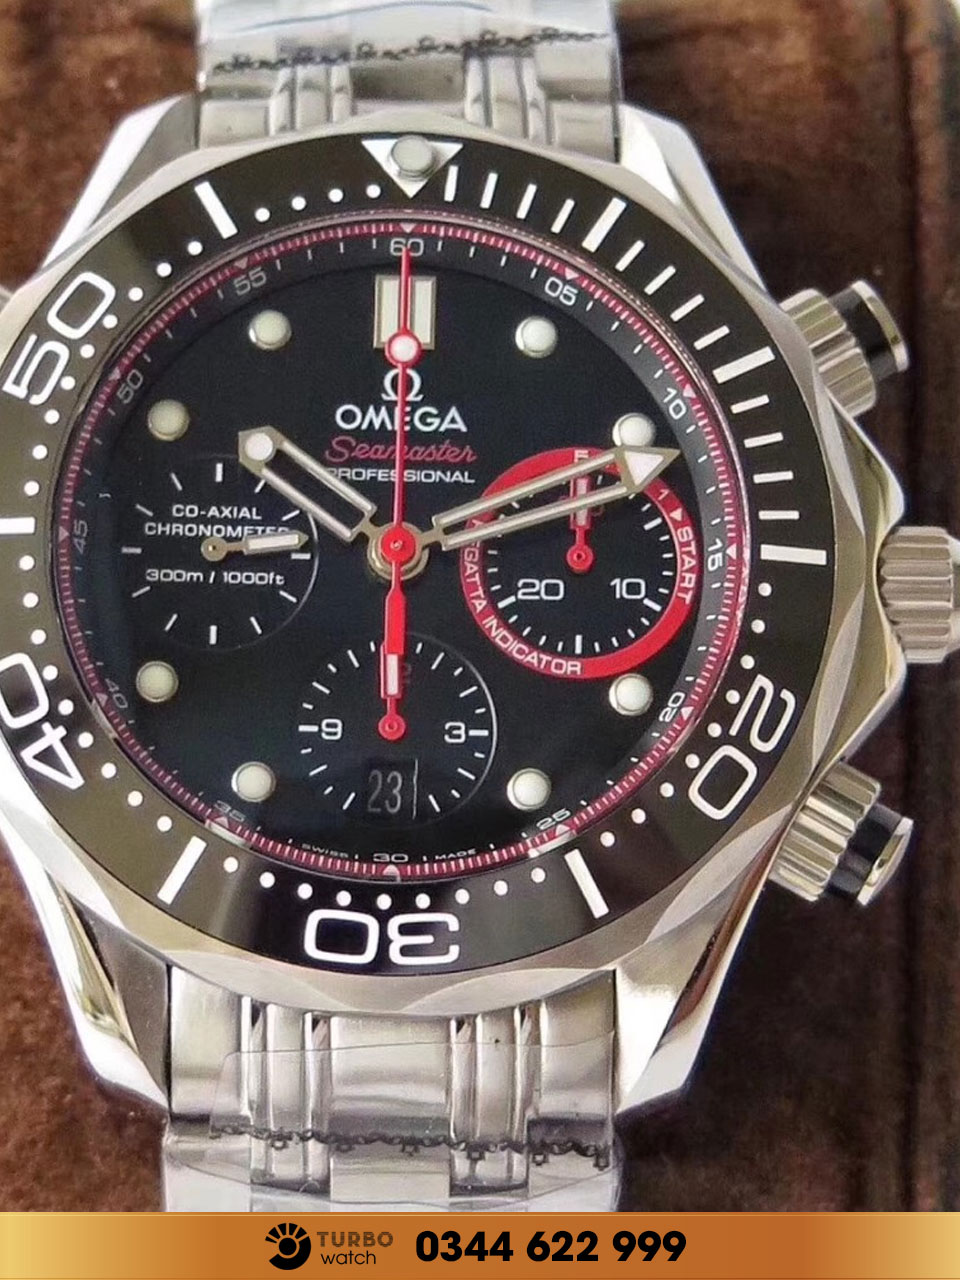 Omega seamaster professional co-axial chronometer 300m 1000ft replica 1:1 cao cấp